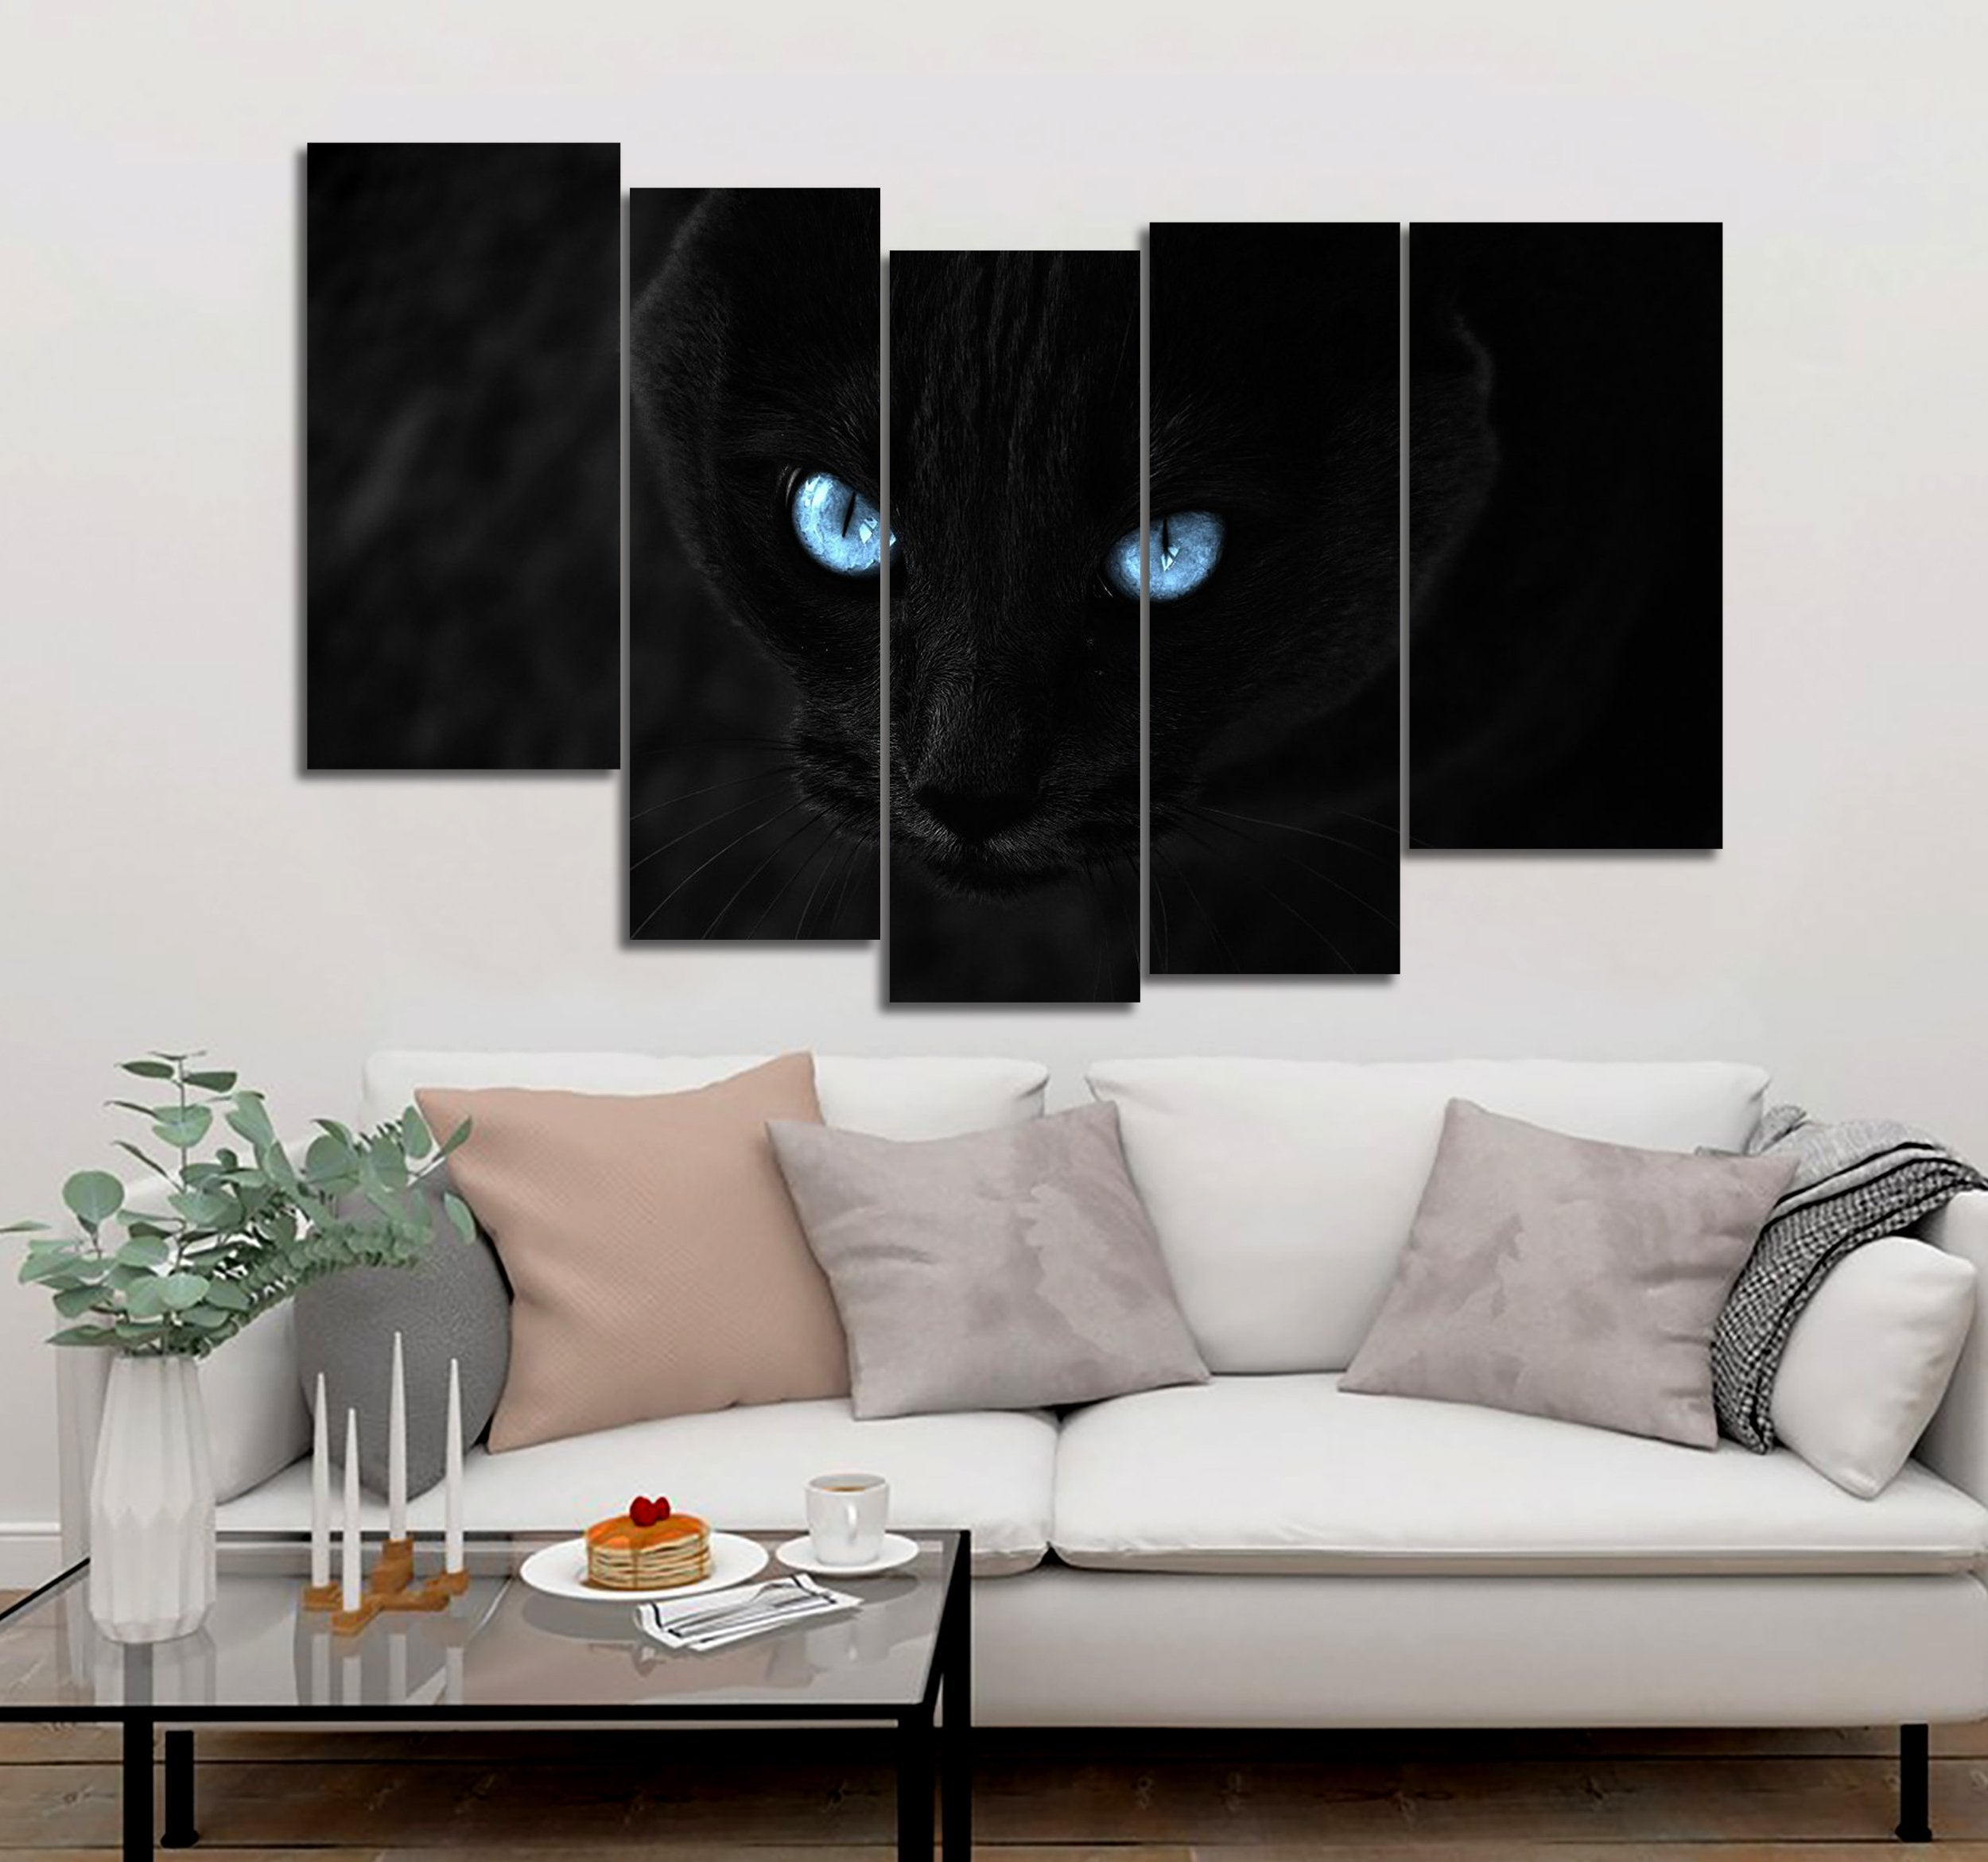 5-piece Black Cat Eyes printed Canvas Wall Art Mode 53 GTM390315 - gopowear.com